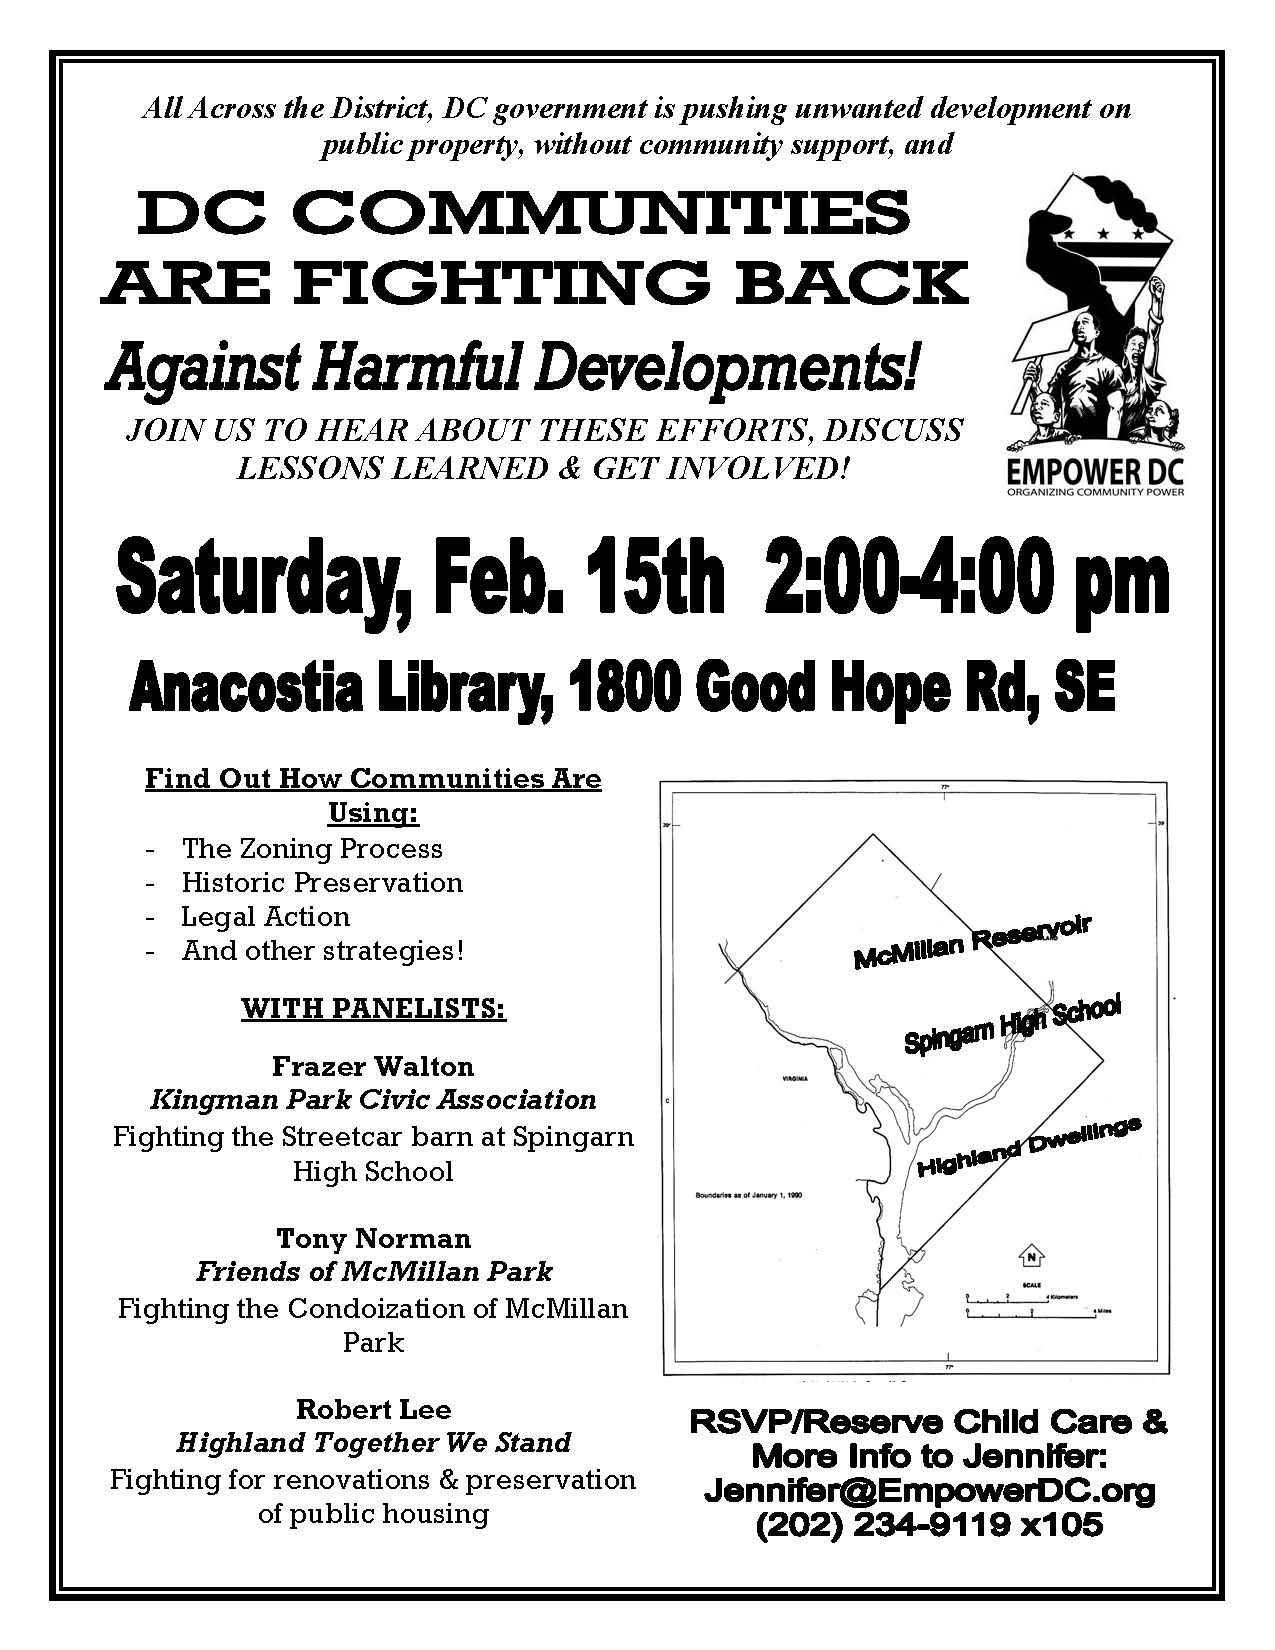 Flier - DC Communities Fighting Back Against Harmful Development - 15 Feb 2014